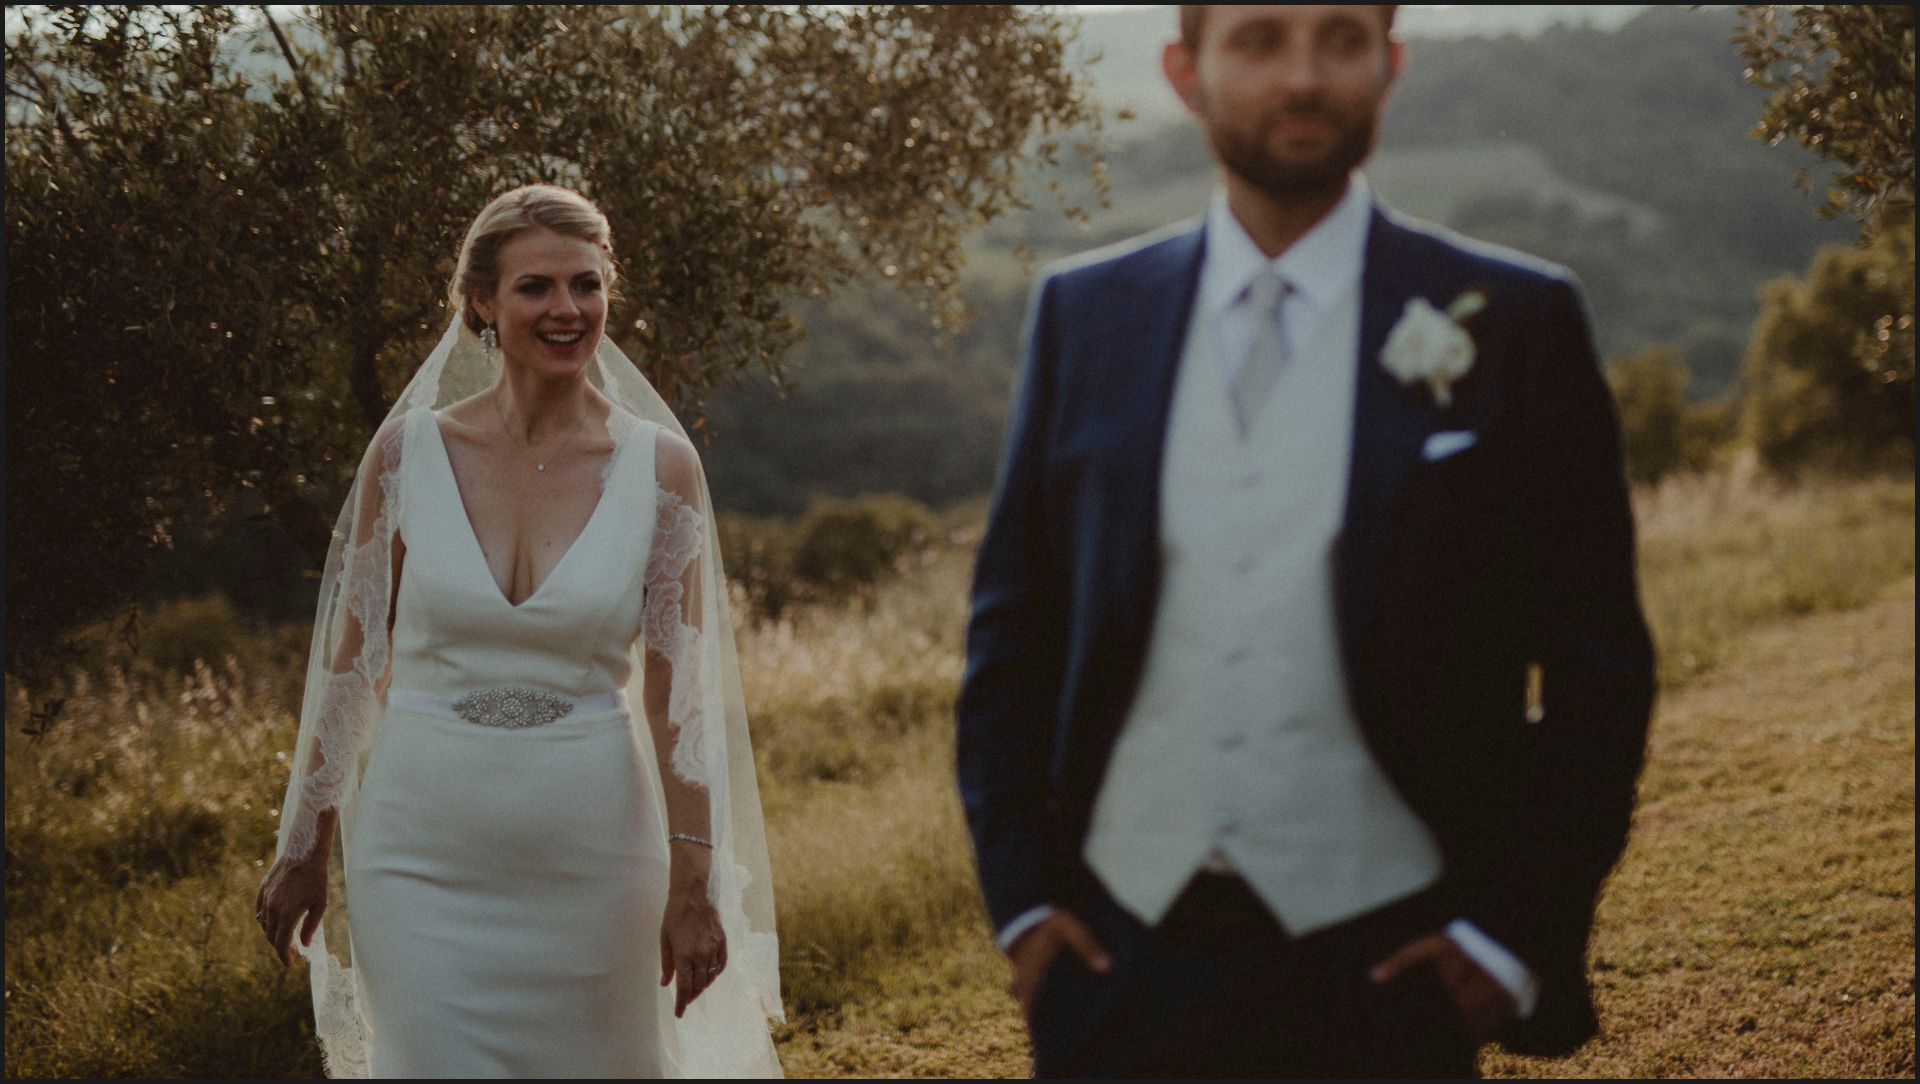 tenuta di canonica, umbria, wedding, bride, groom, love,